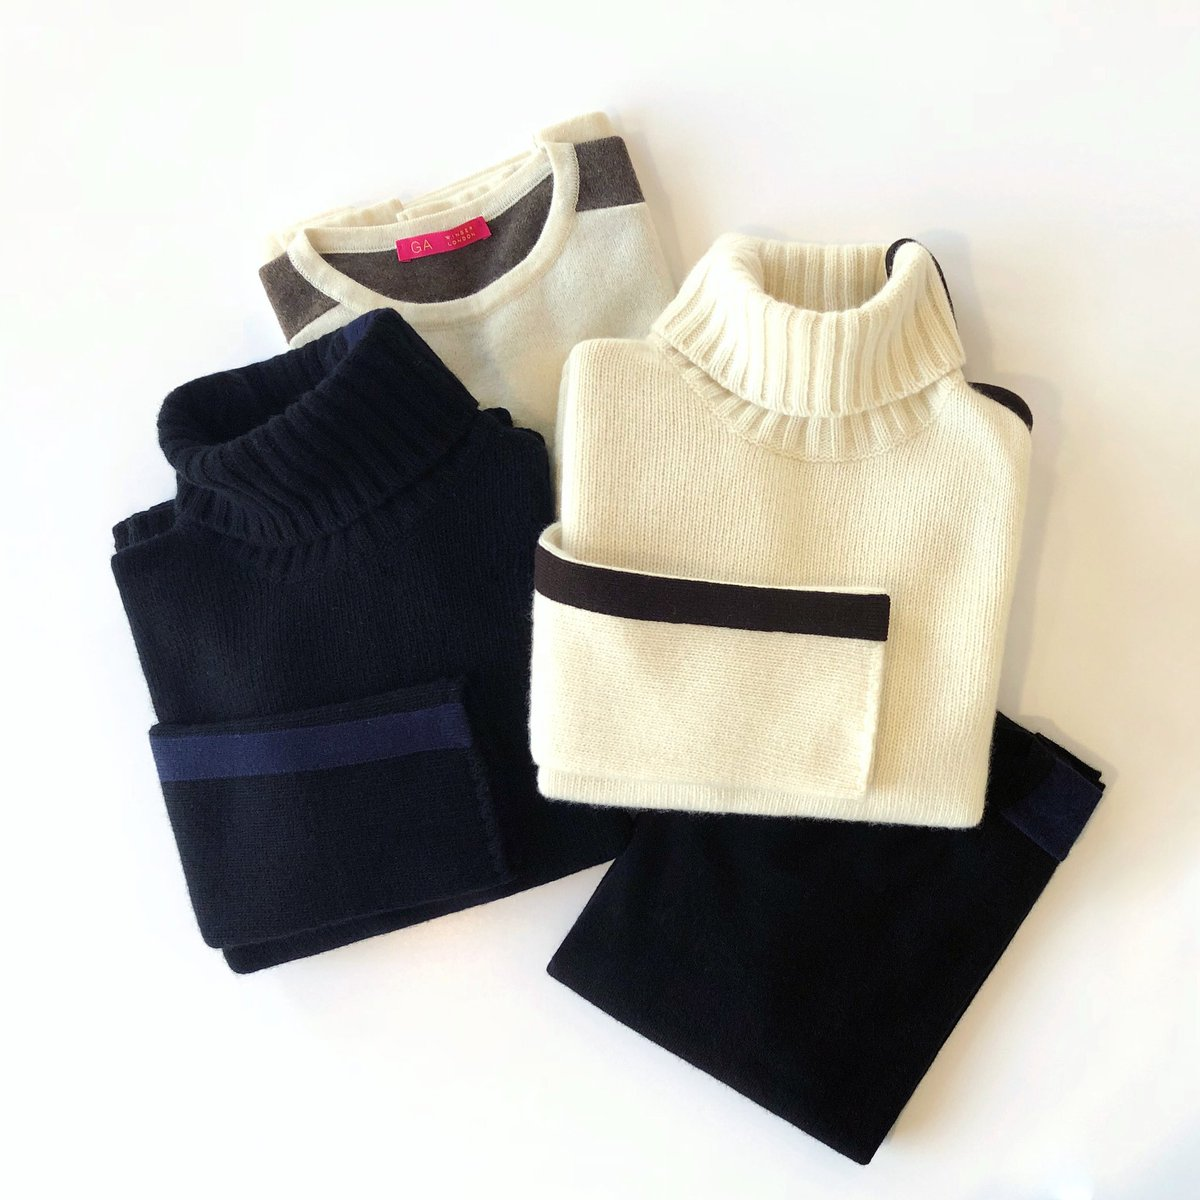 November is looking cozy ✨ New jumper colours available 11/21 from #GAWinserLondon! @WinserLondon https://t.co/rS1u3hLs8T